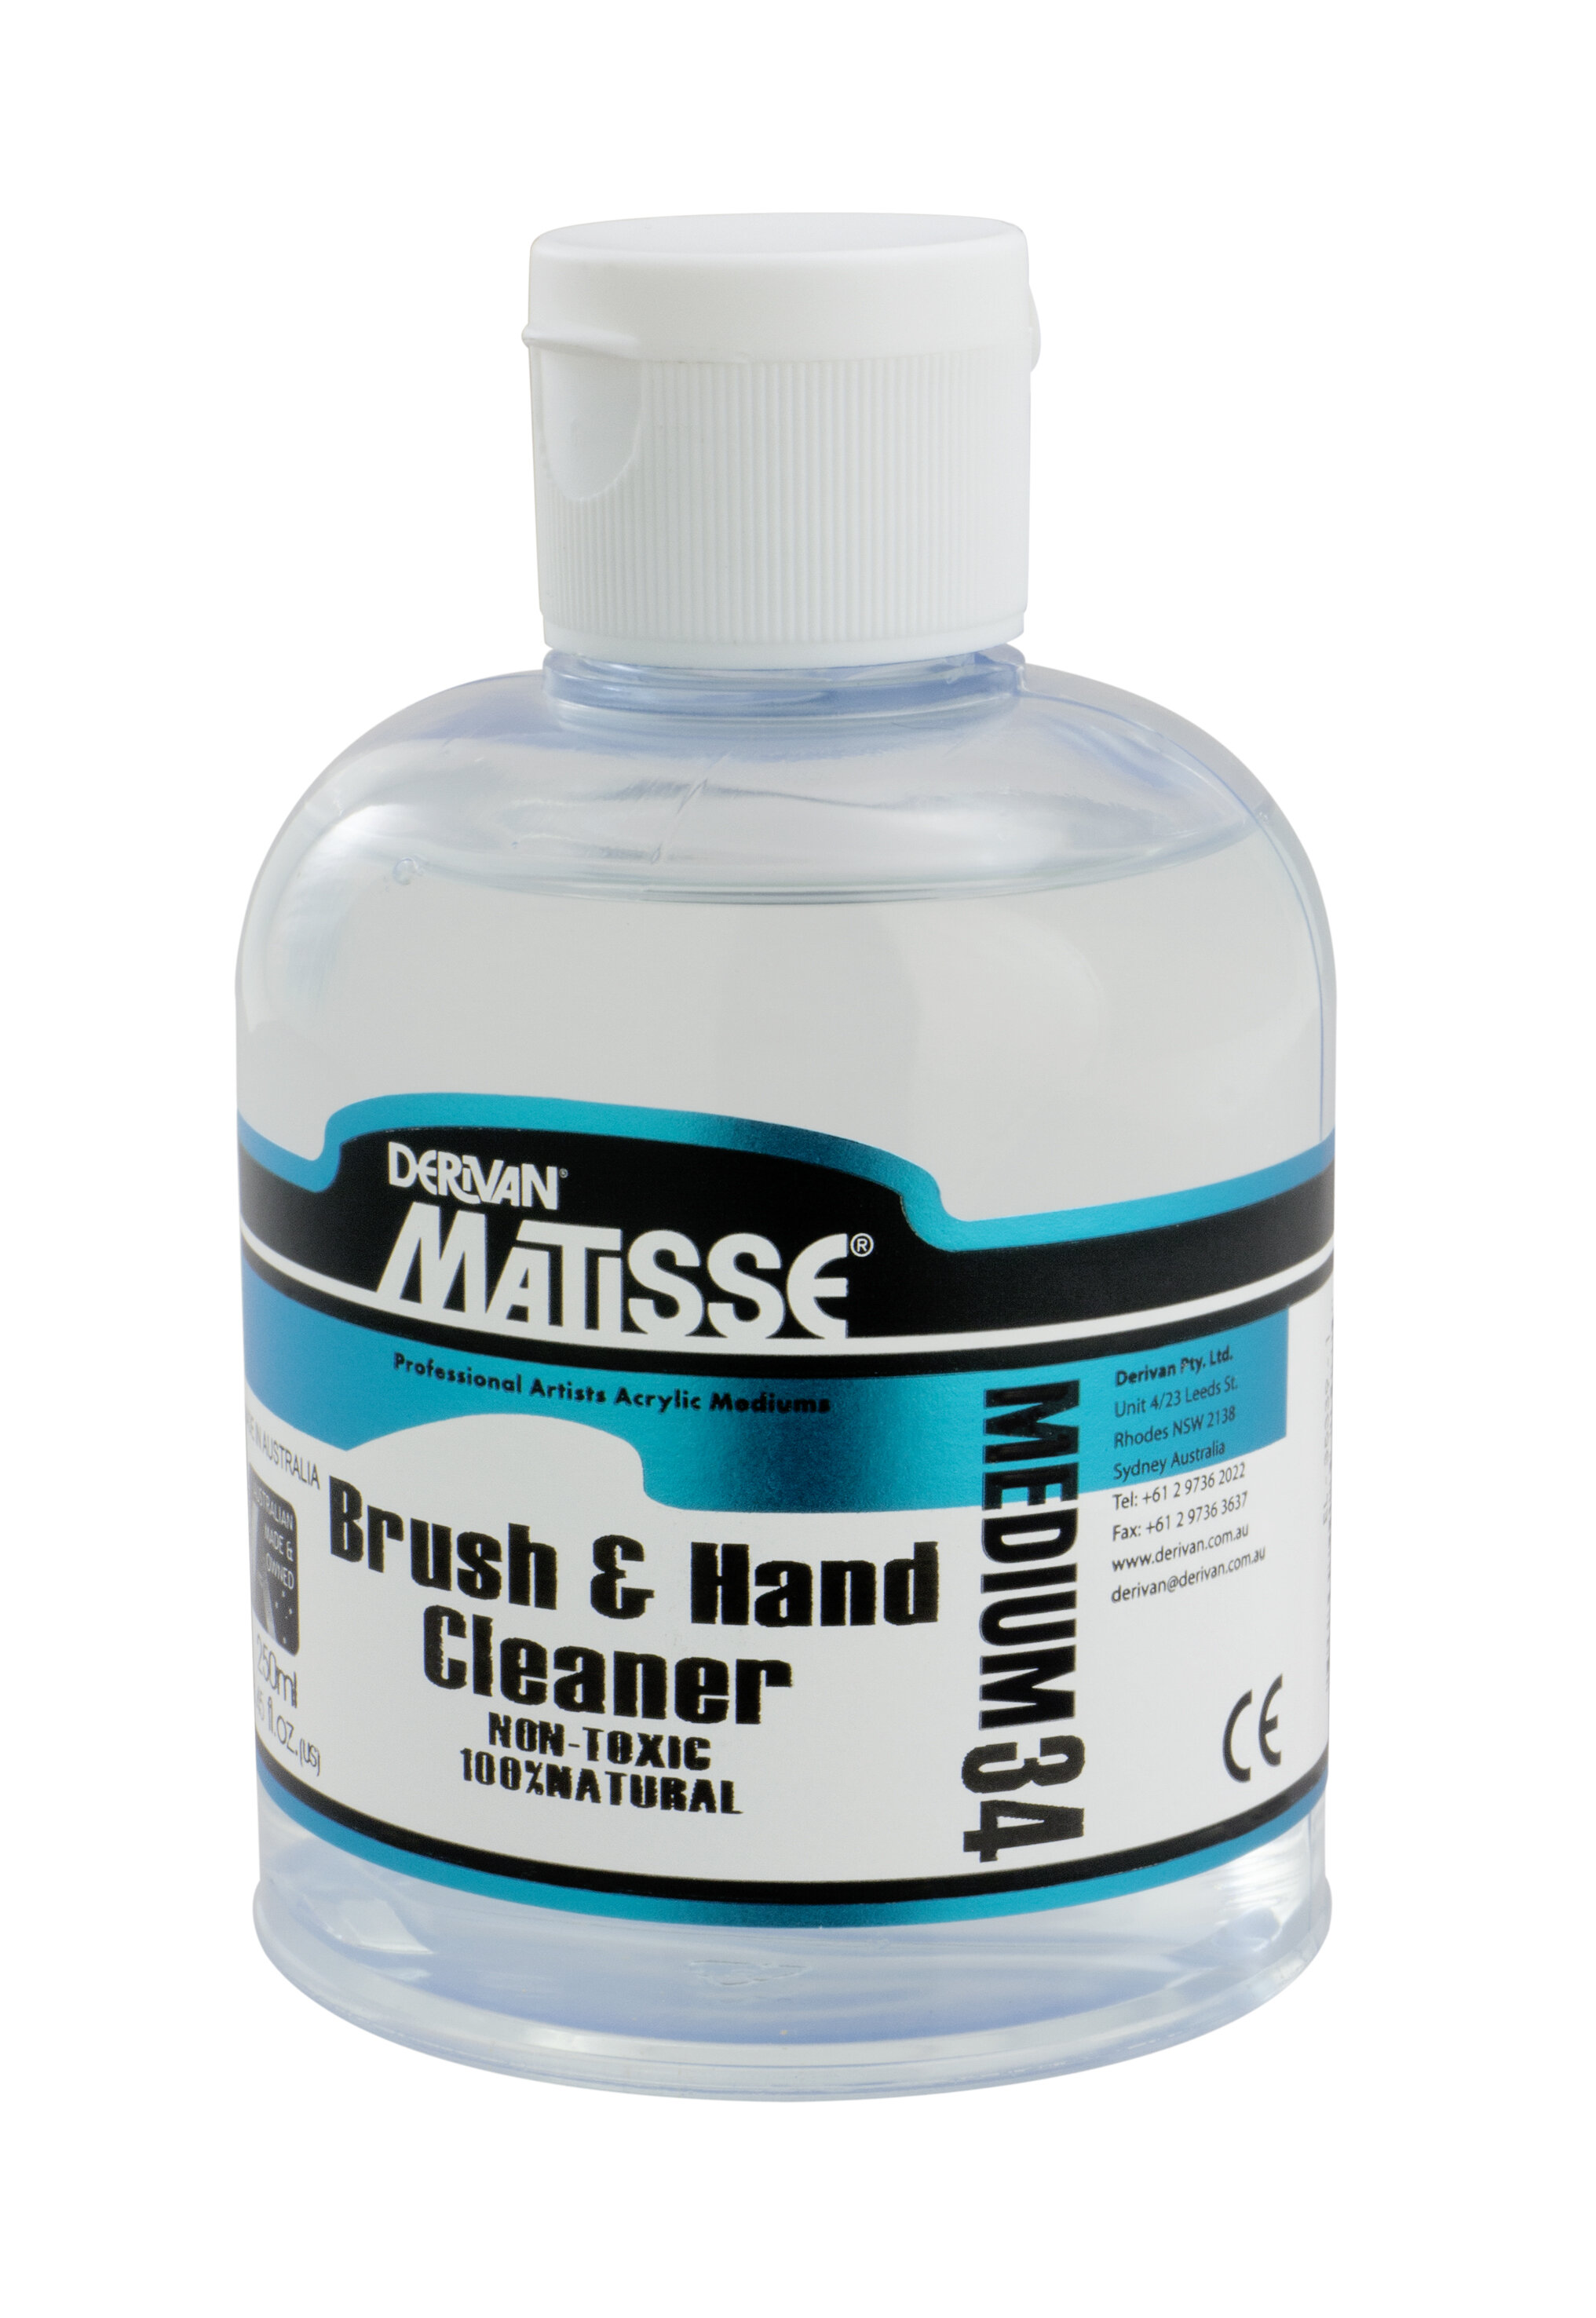 MM34 Brush & Hand Cleaner - ———————Gentle cleaner to remove paint from both brushes and hands. Natural ingredients, non toxic or polluting, biodegradable.